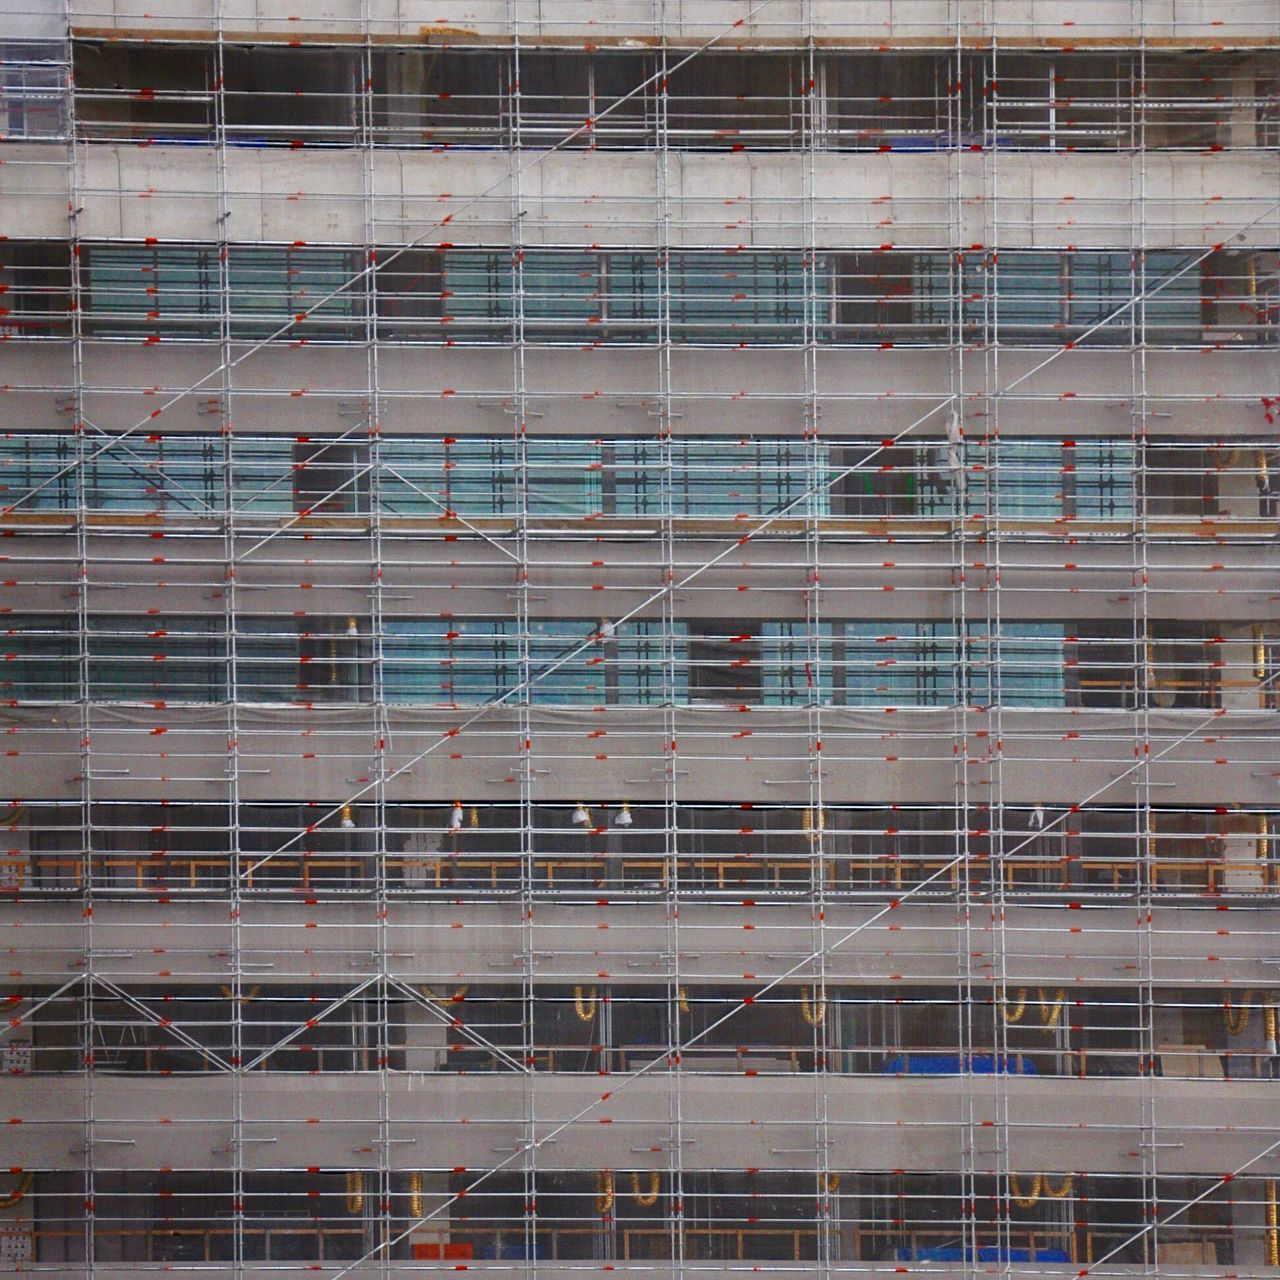 This is Auckland the Construction Boom is Real Appartment Sites Everywhere Built Structure, Scaffolding and what not